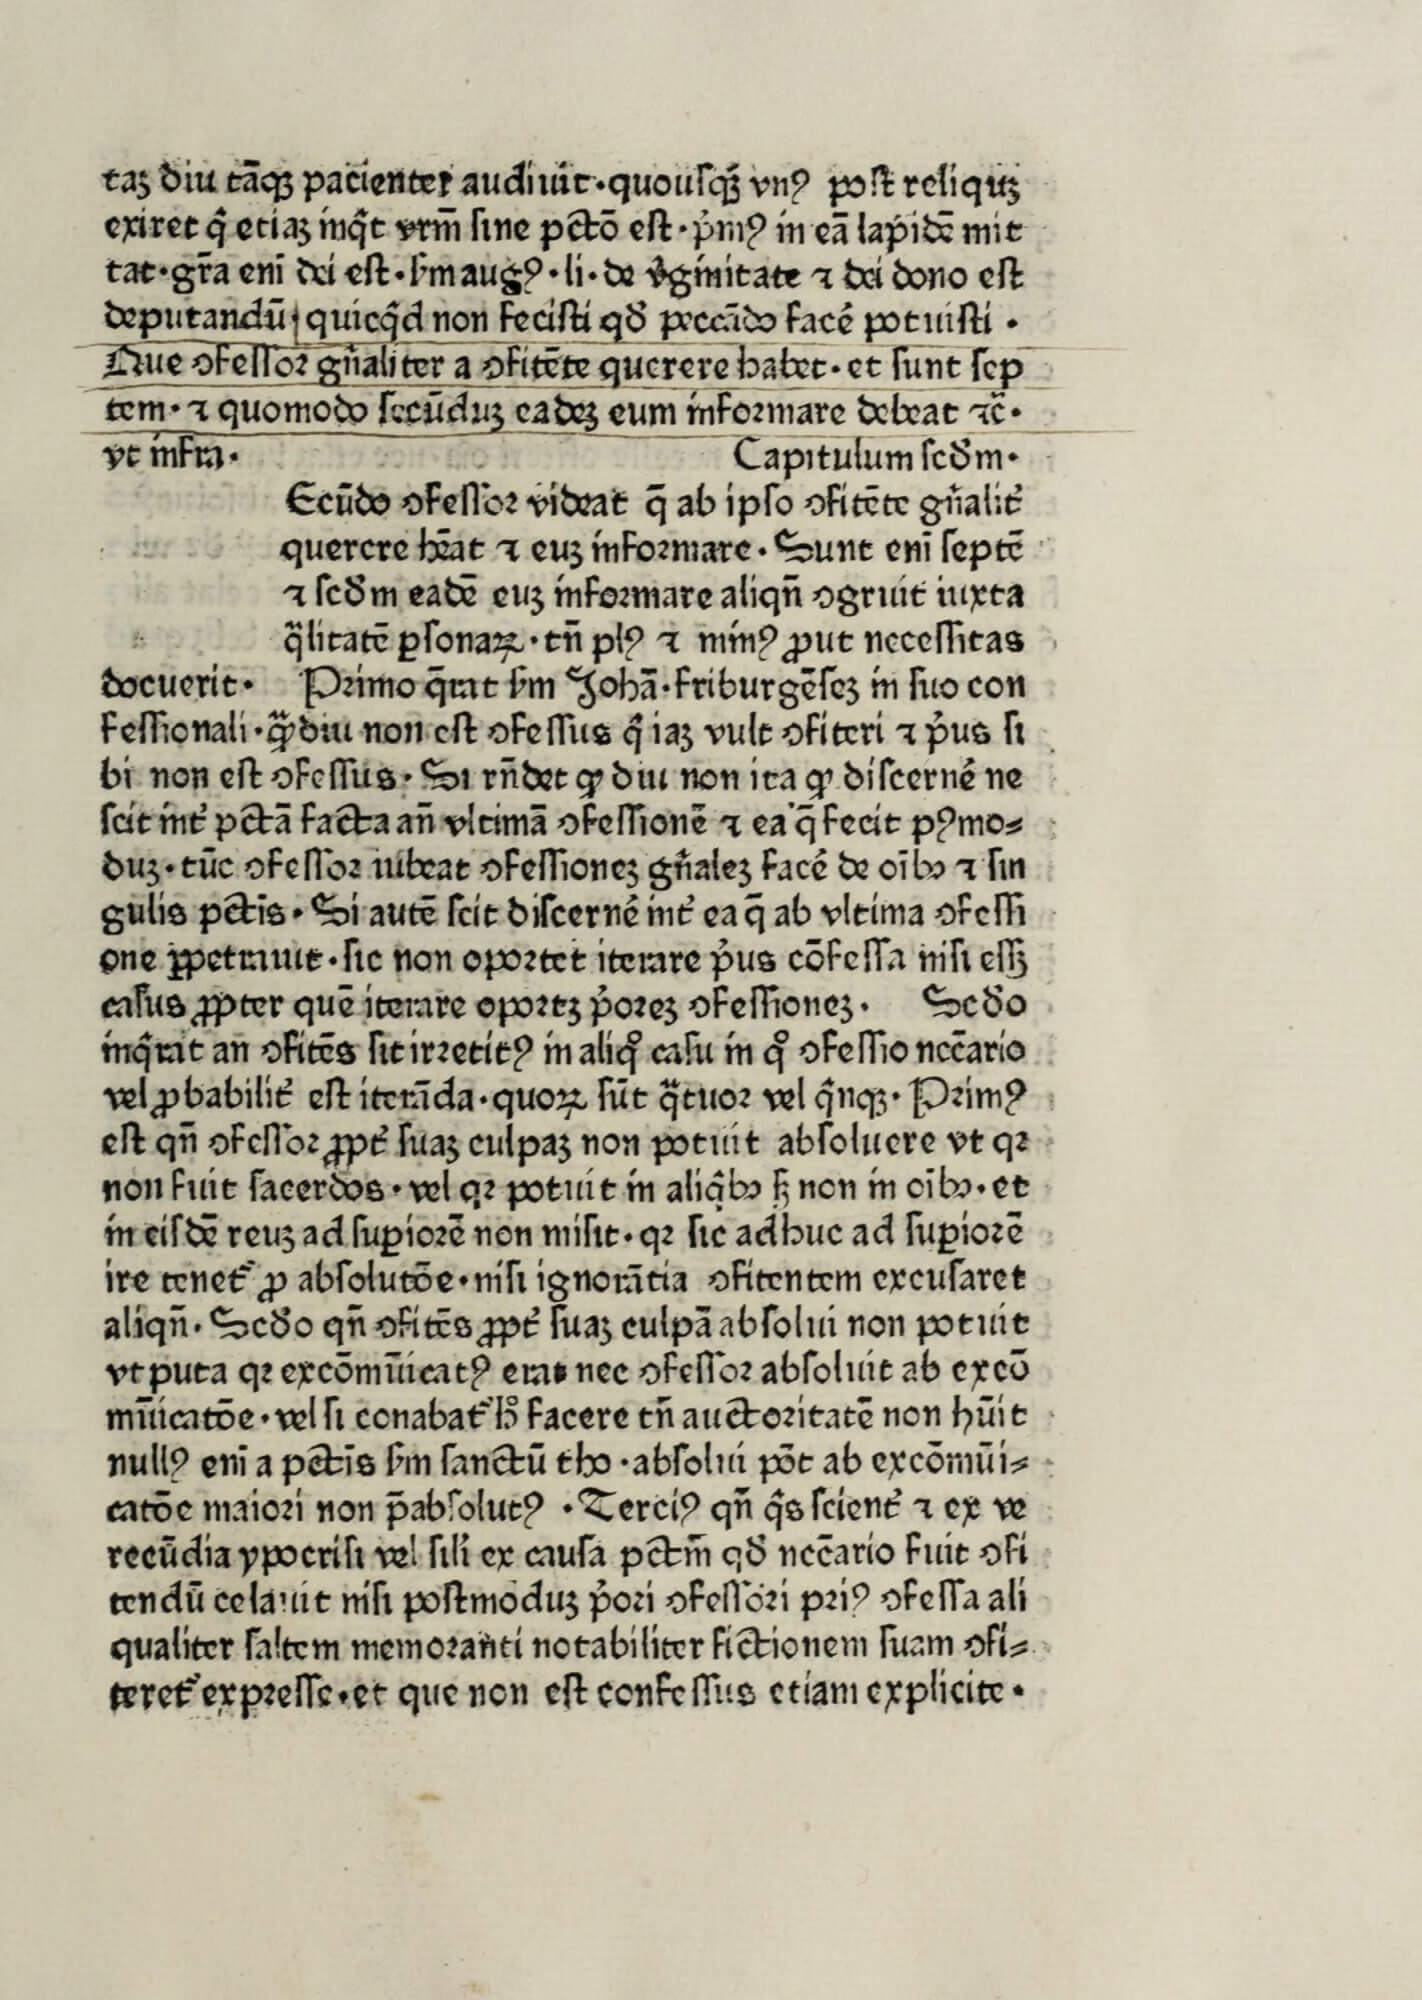 Although this book has clearly been read and annotated by a reader, its owner never had the initial letters or rubrication added. You can see on the left an empty square that would hold a hand-drawn initial letter as well as a smaller space further down on the right that would have been rubricated with a capitulum to indicate the start of a new chapter or section.